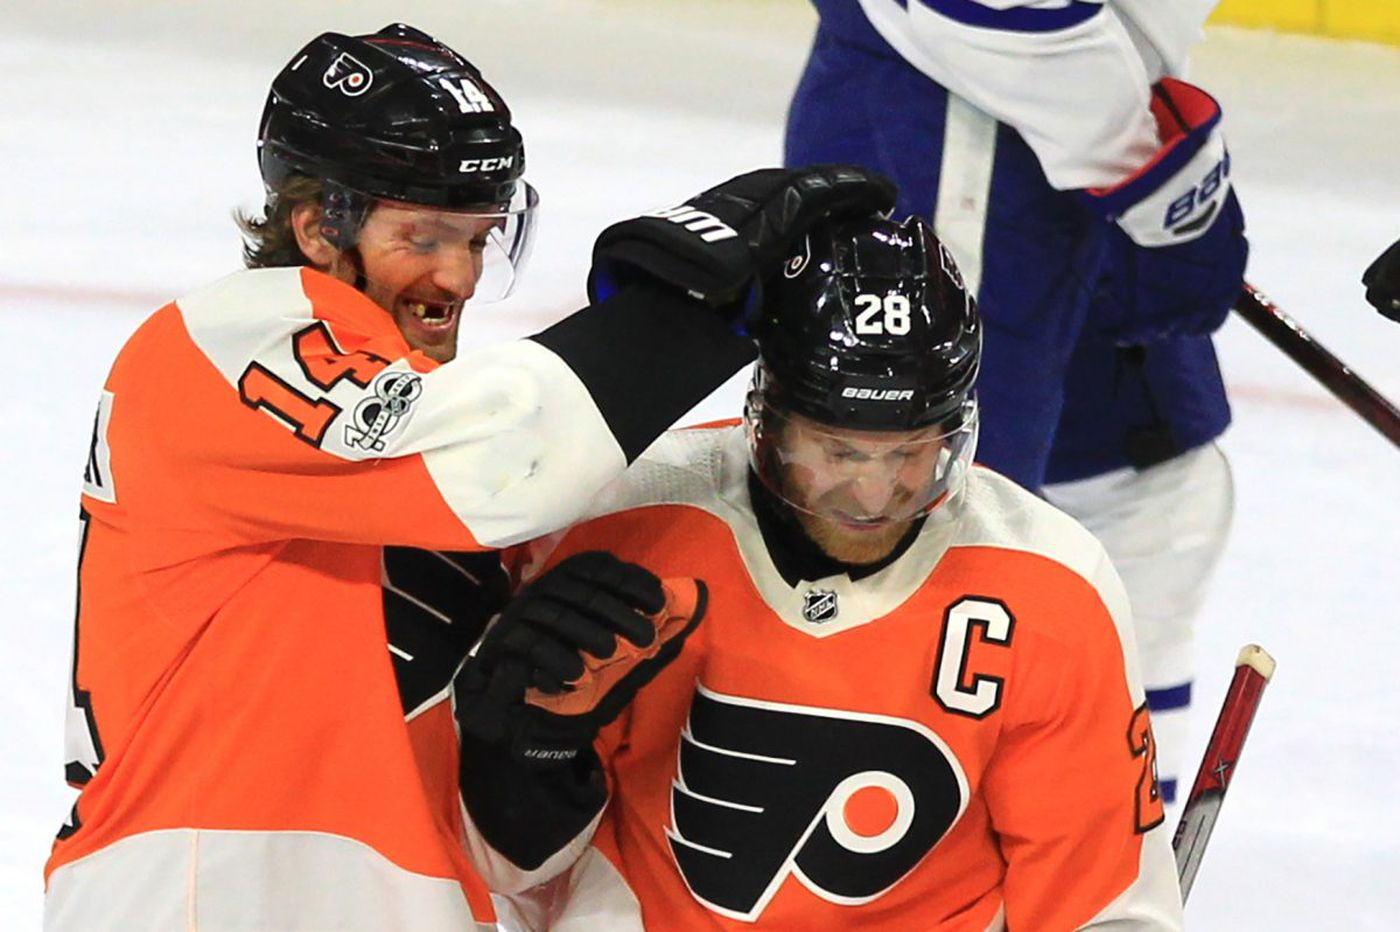 Sean Couturier, the snubbed all-star is Flyers' first-half MVP | Sam Carchidi